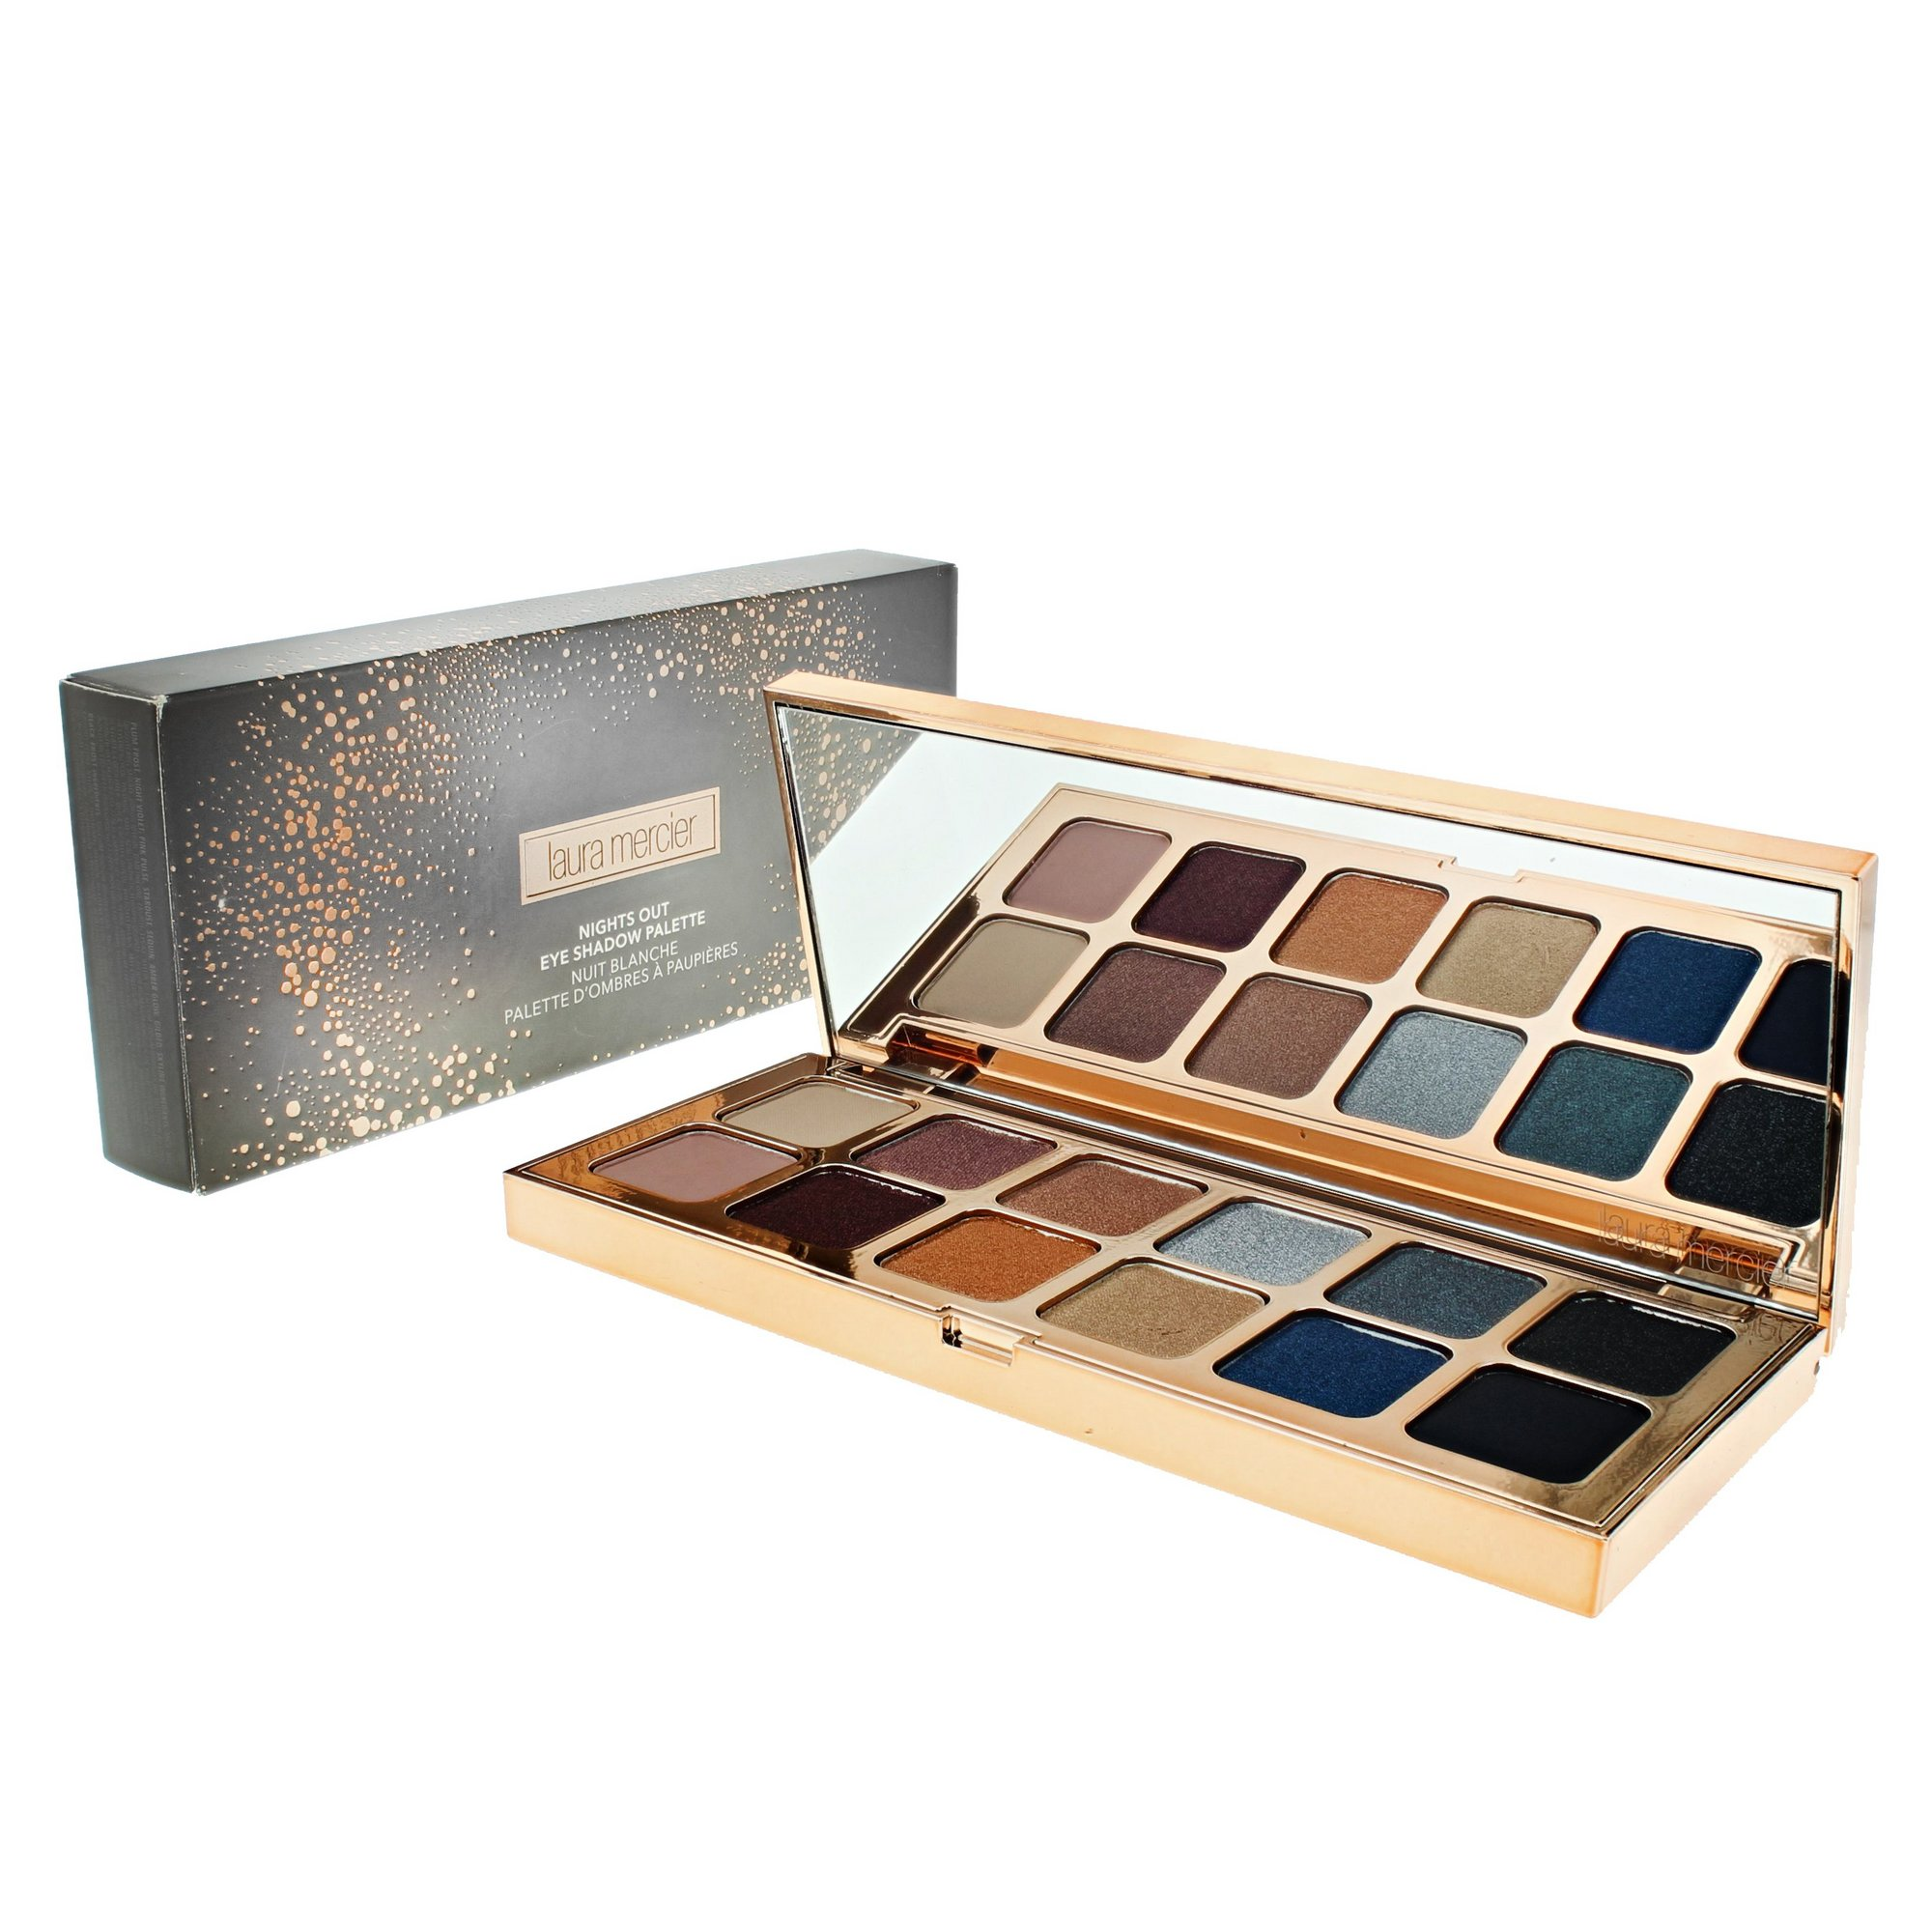 Image of Laura Mercier Nights Out Eye Shadow Palette